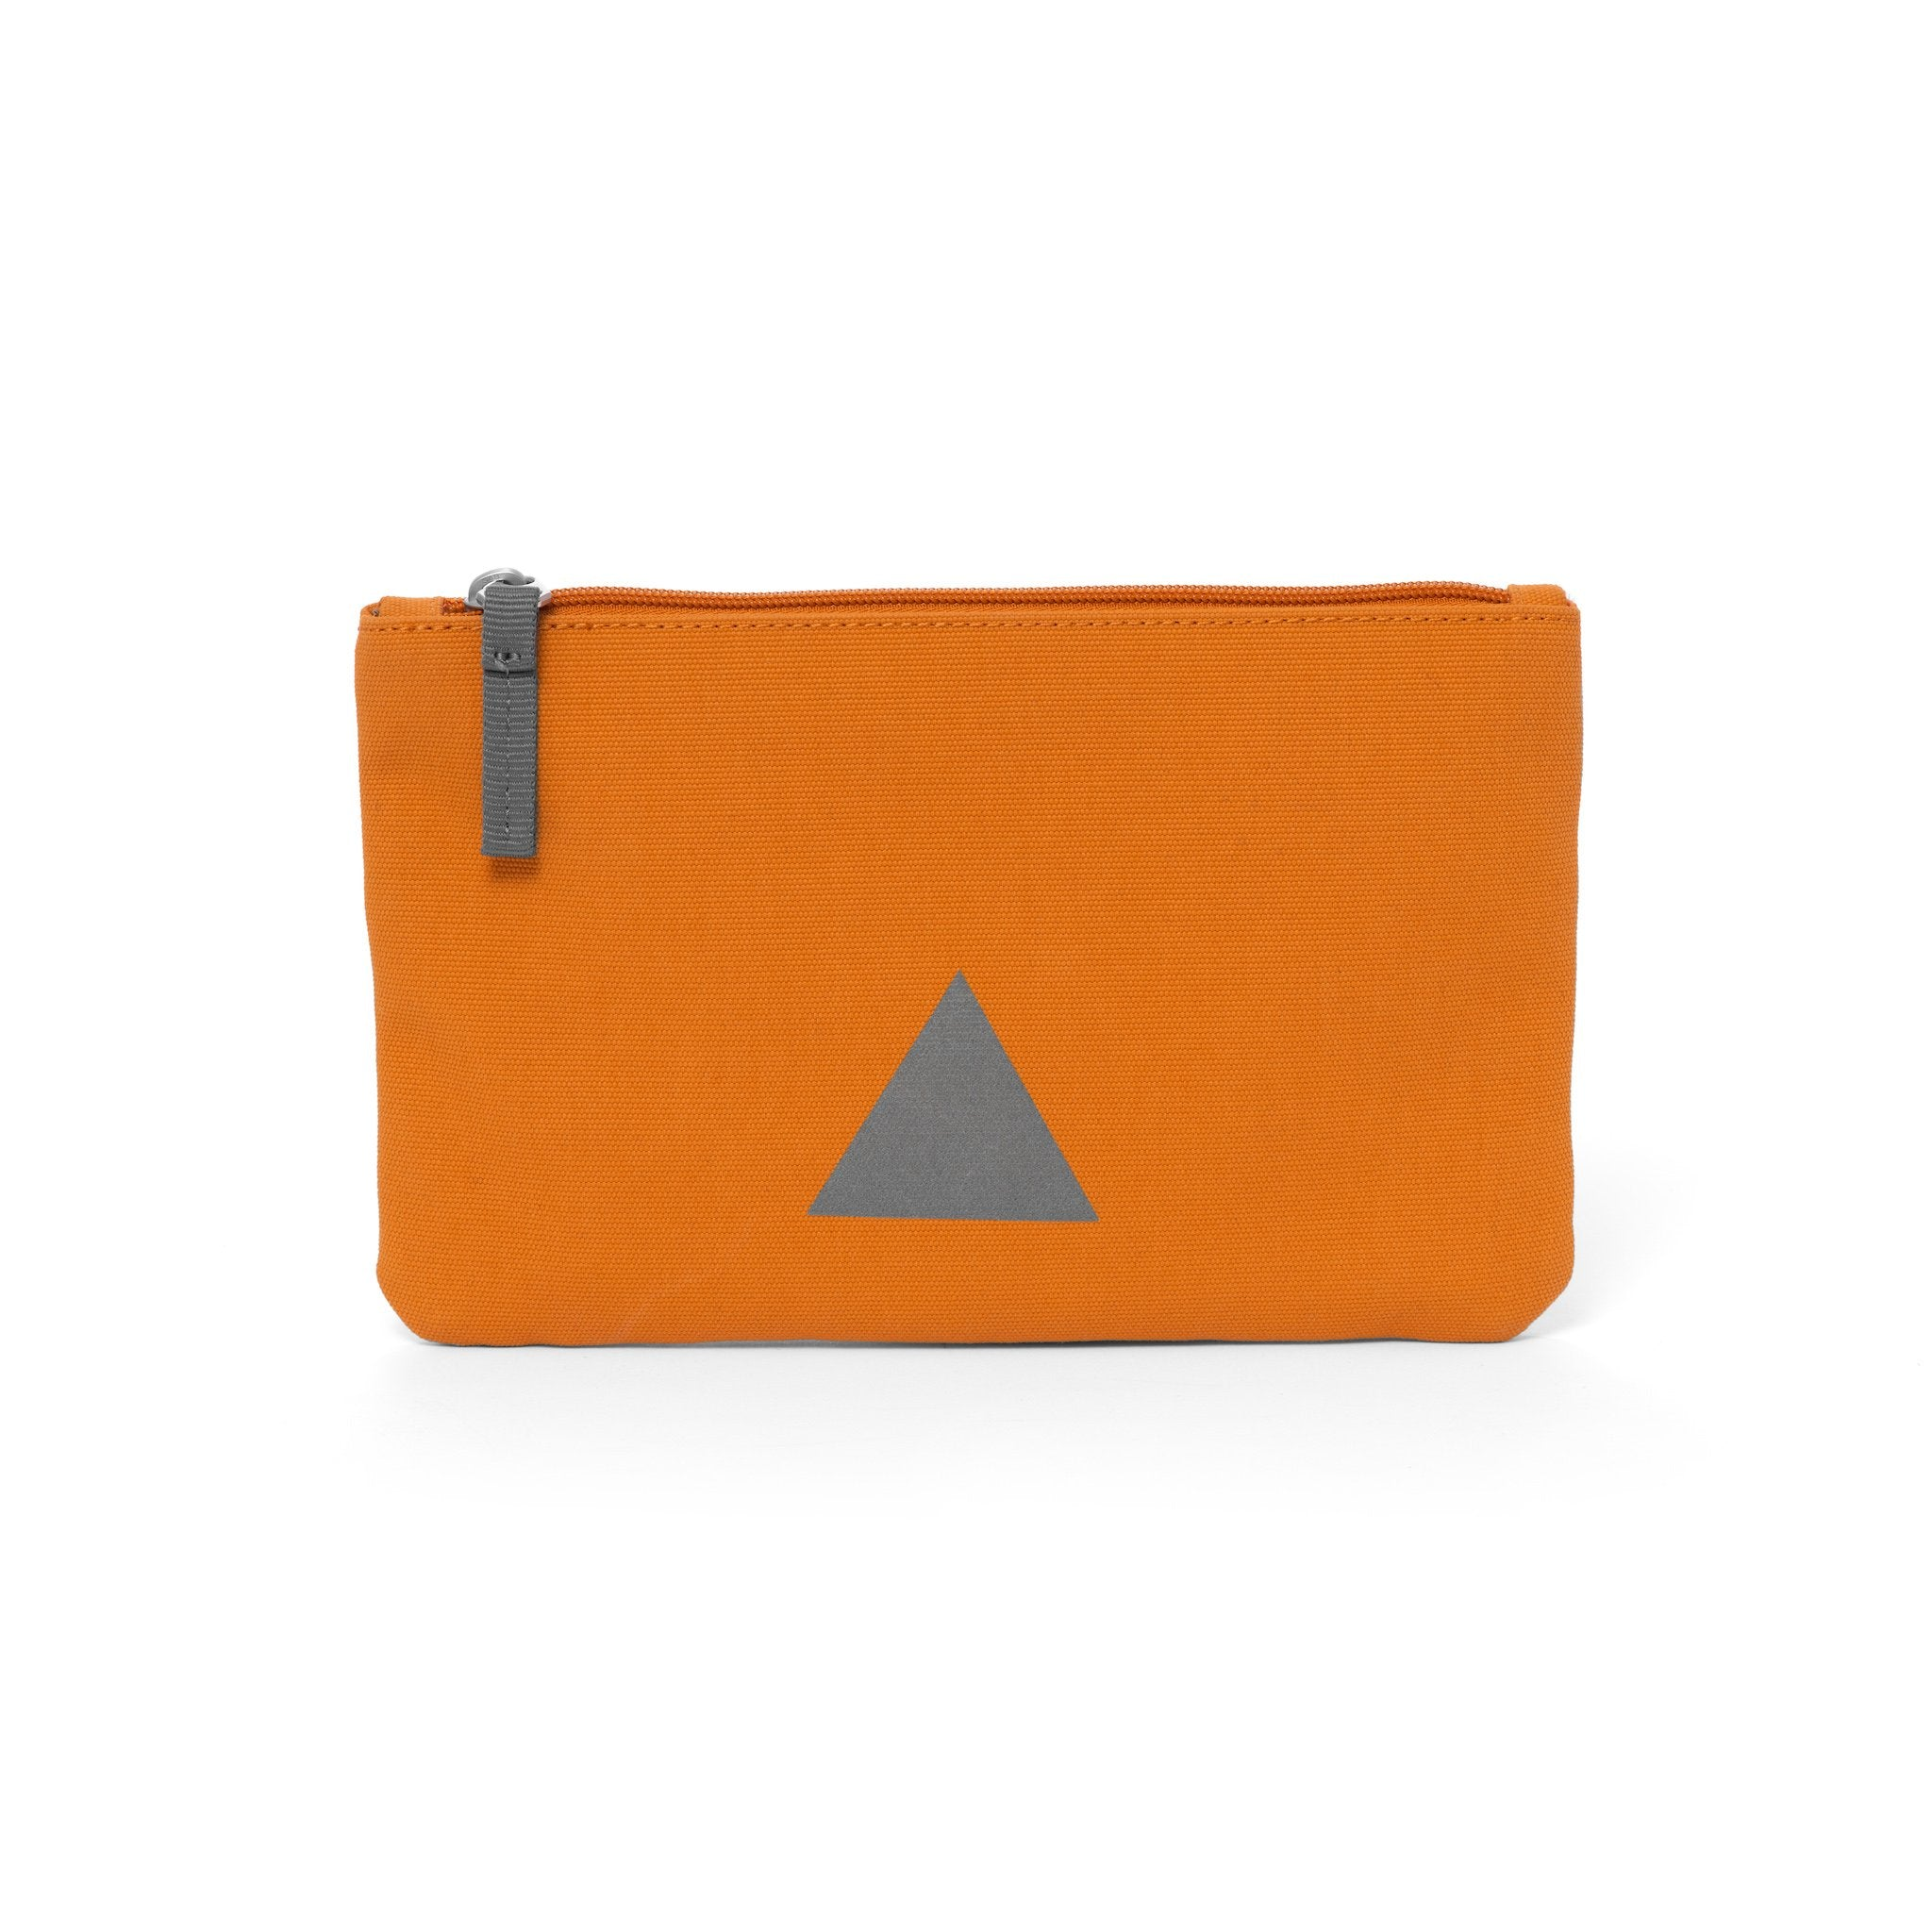 Orange canvas travel wallet with zip opening and triangle logo.